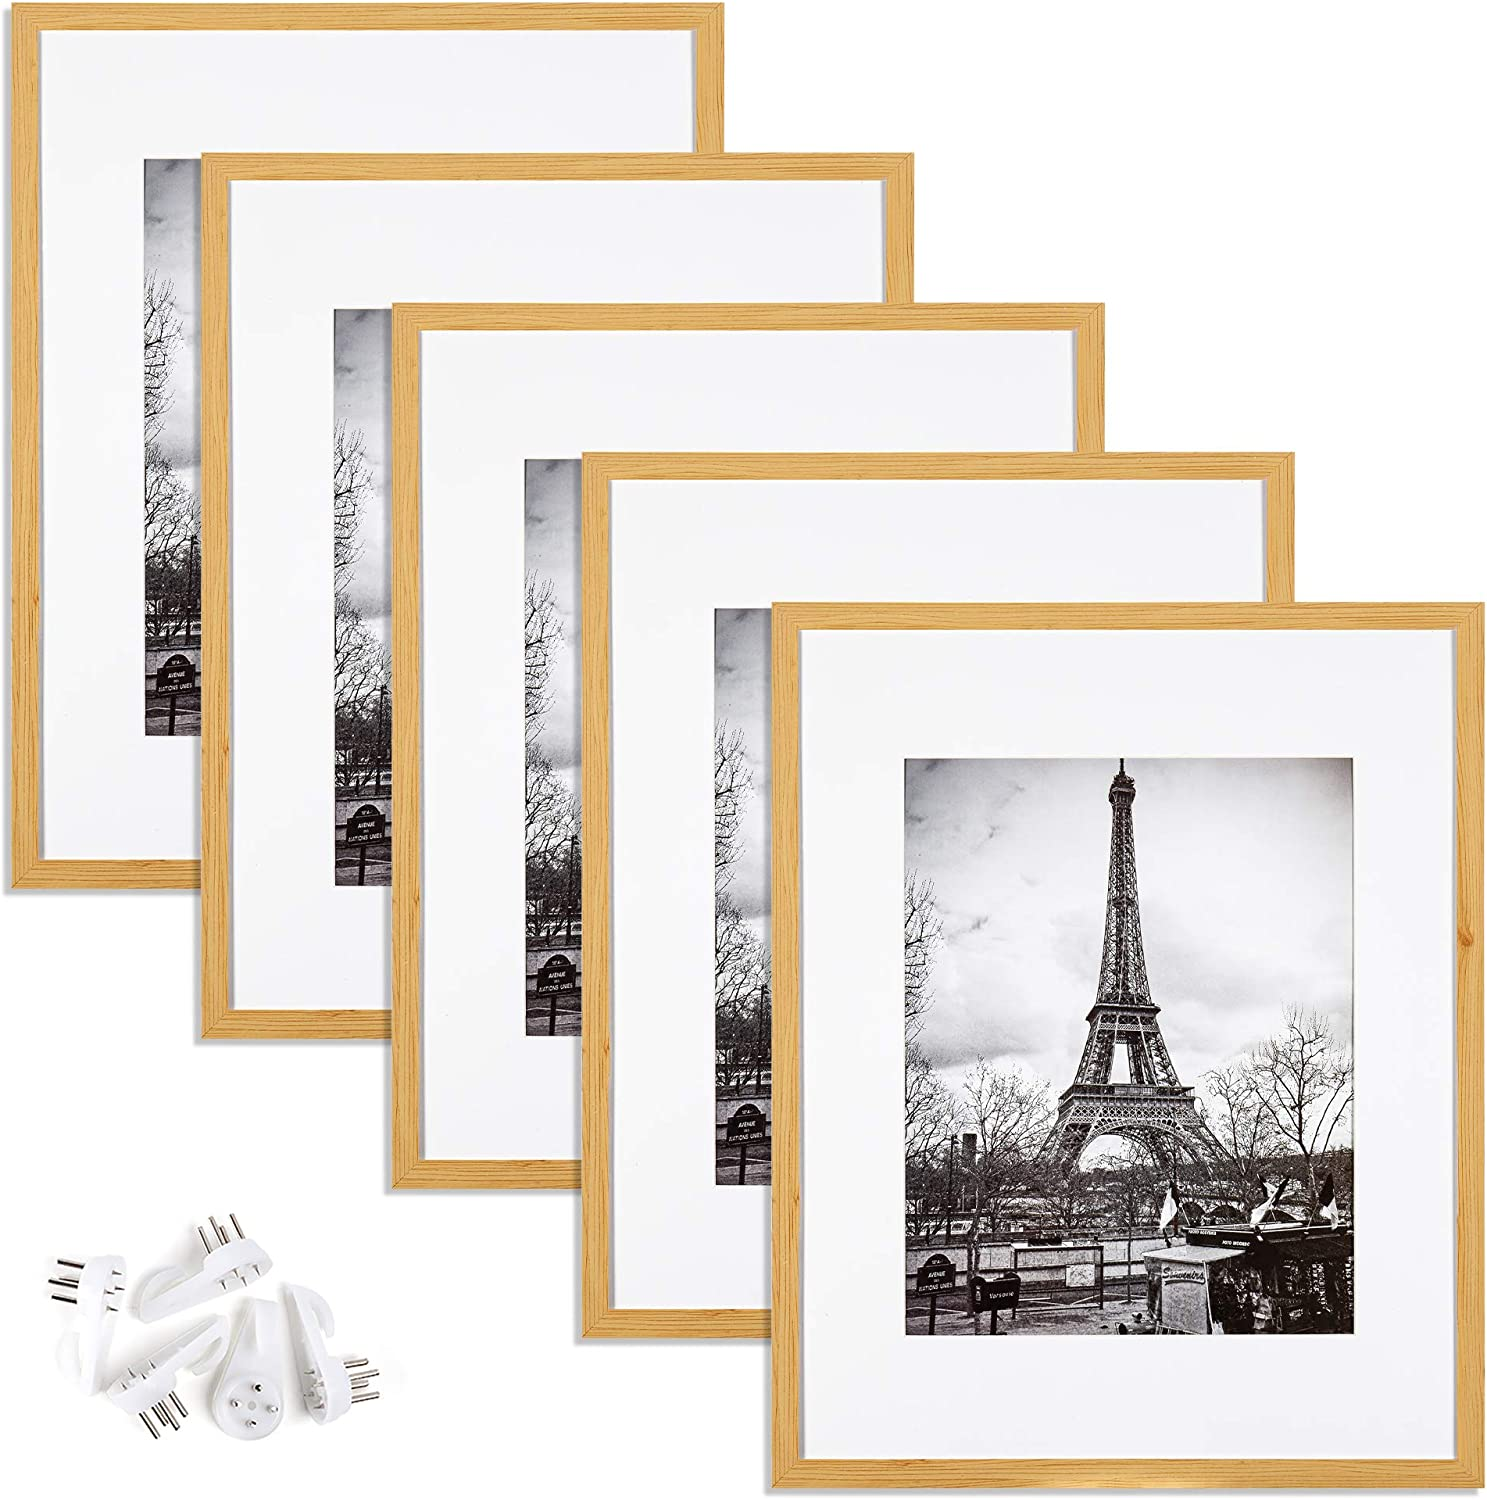 upsimples 16x20 Picture Frame Set of 5,Display Pictures 11x14 with Mat or 16x20 Without Mat,Wall Gallery Poster Frames,Oak